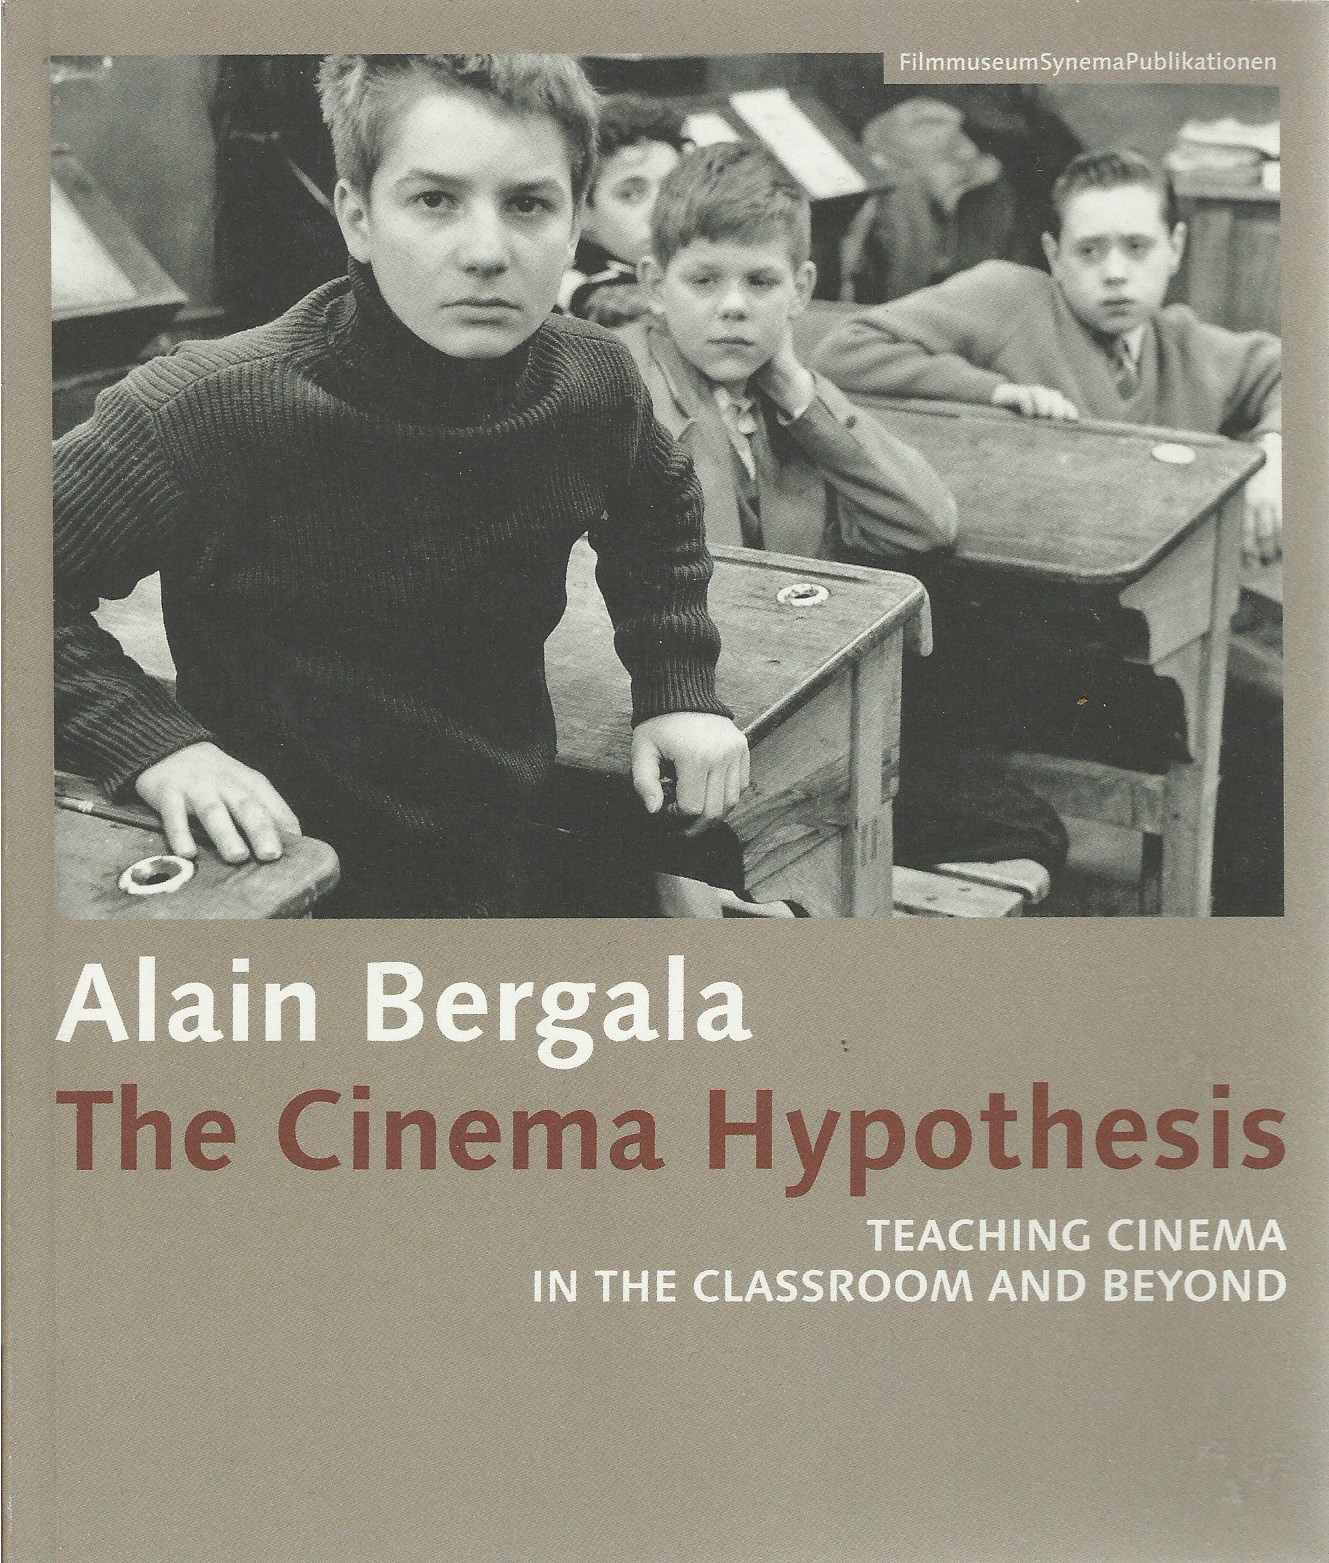 The Cinema Hypothesis: Teaching Cinema in the Classroom and beyond